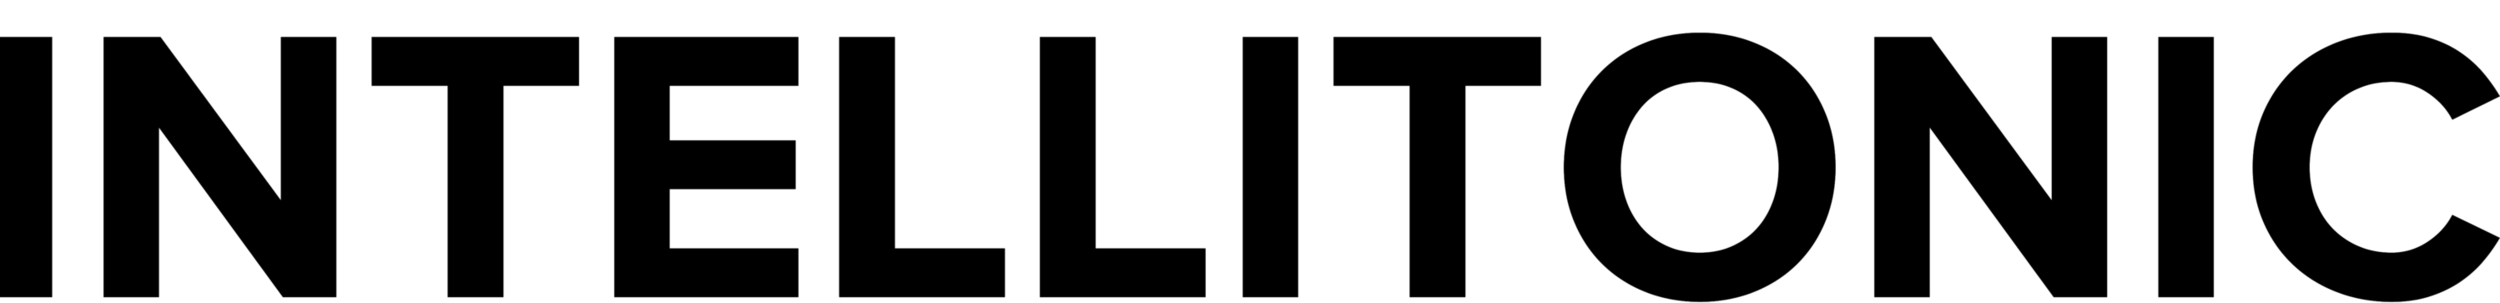 Intellitonic_dark_logo - text only (1).png